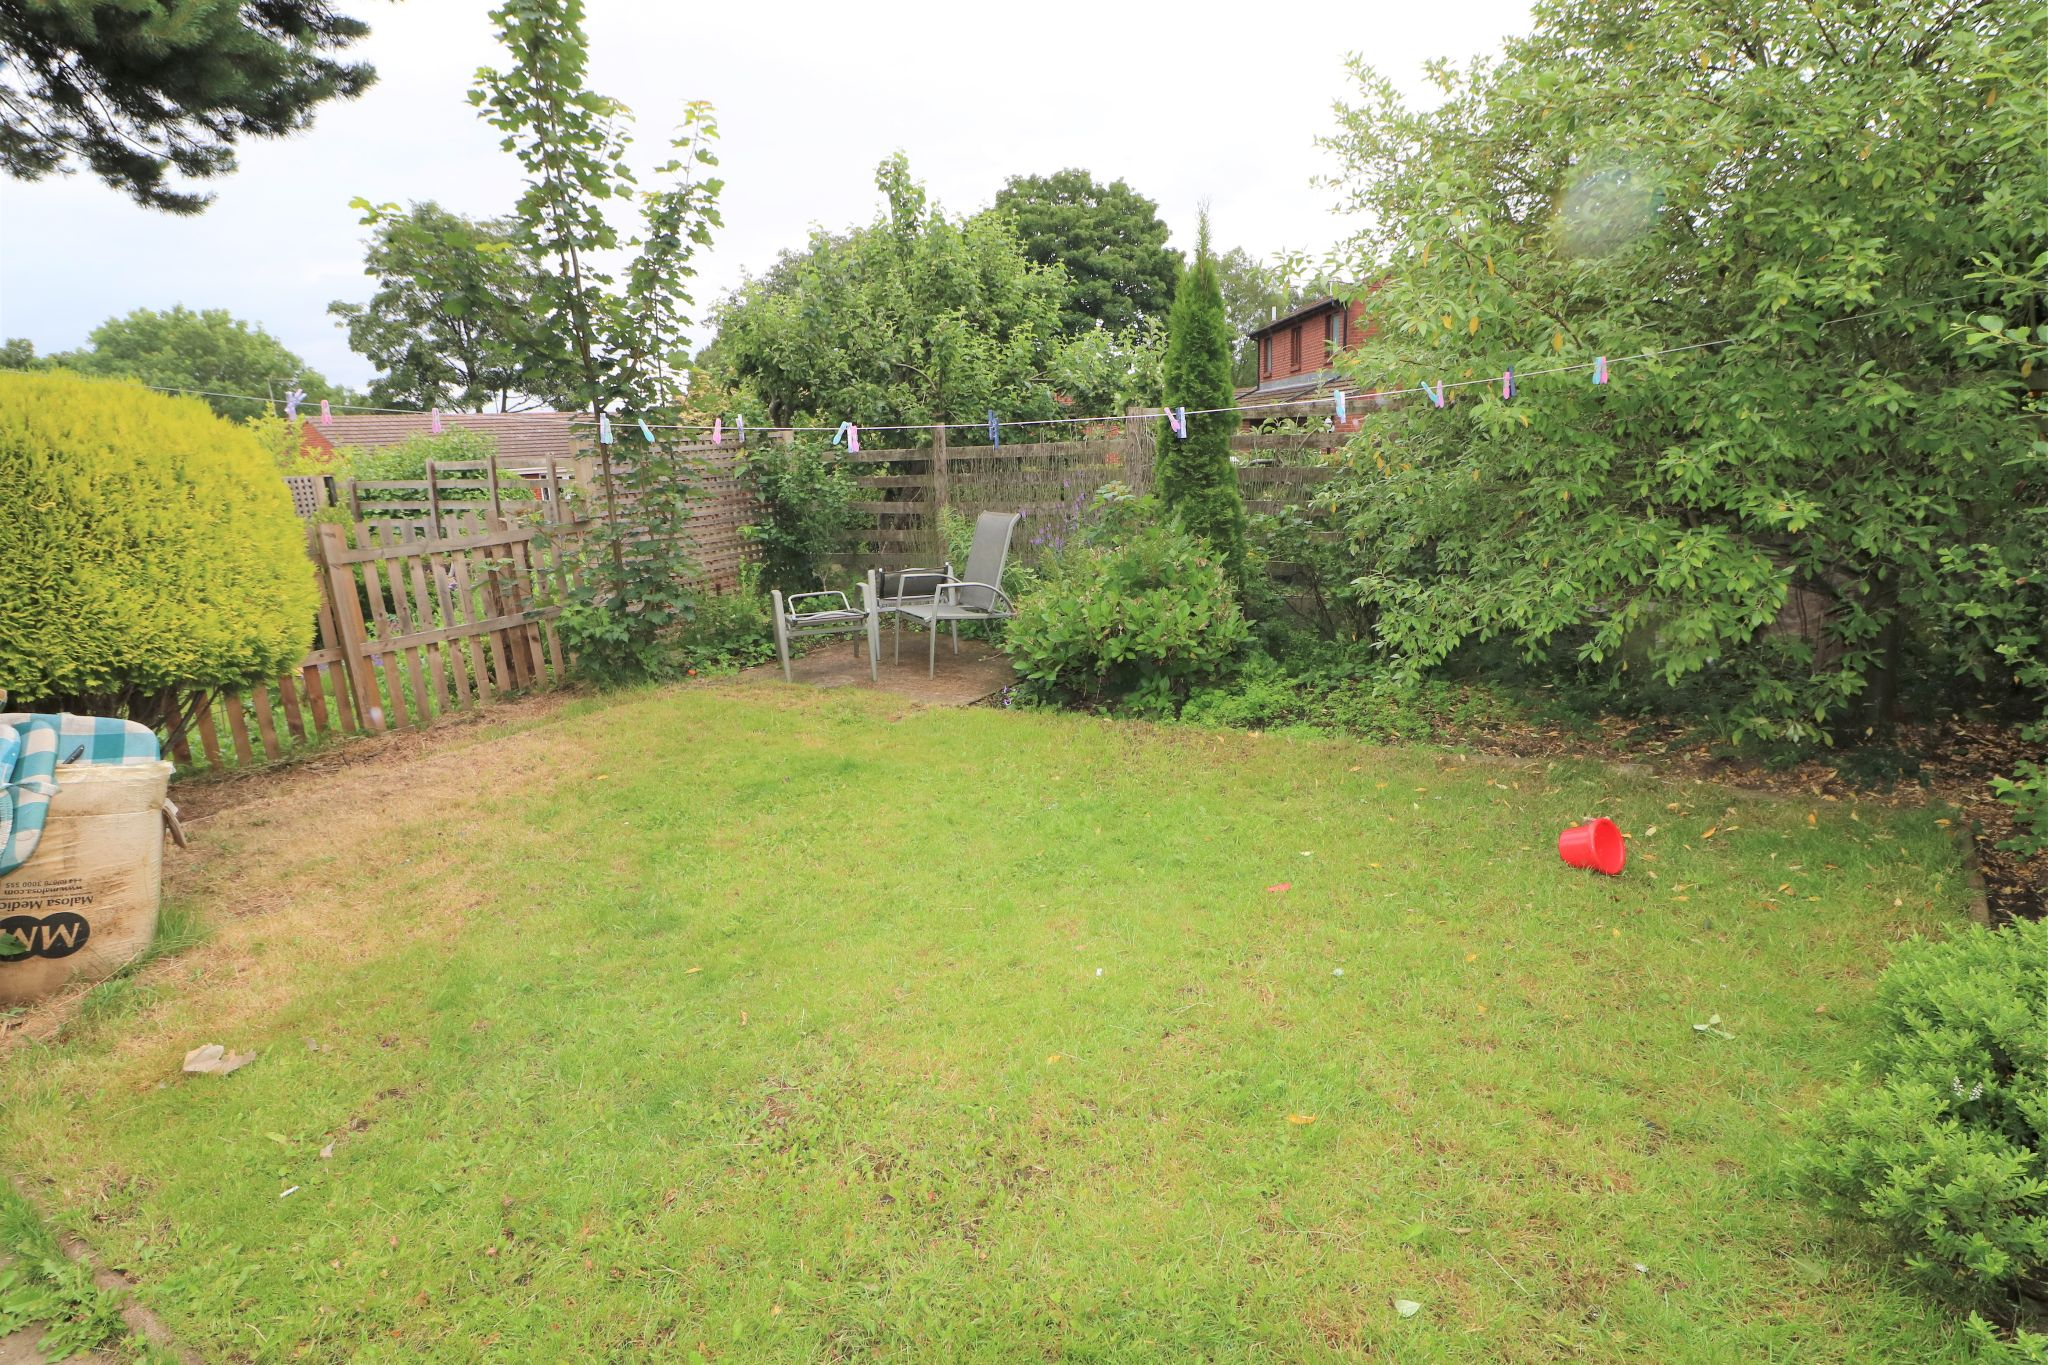 4 Bedroom Semi-detached House For Sale - Photograph 22